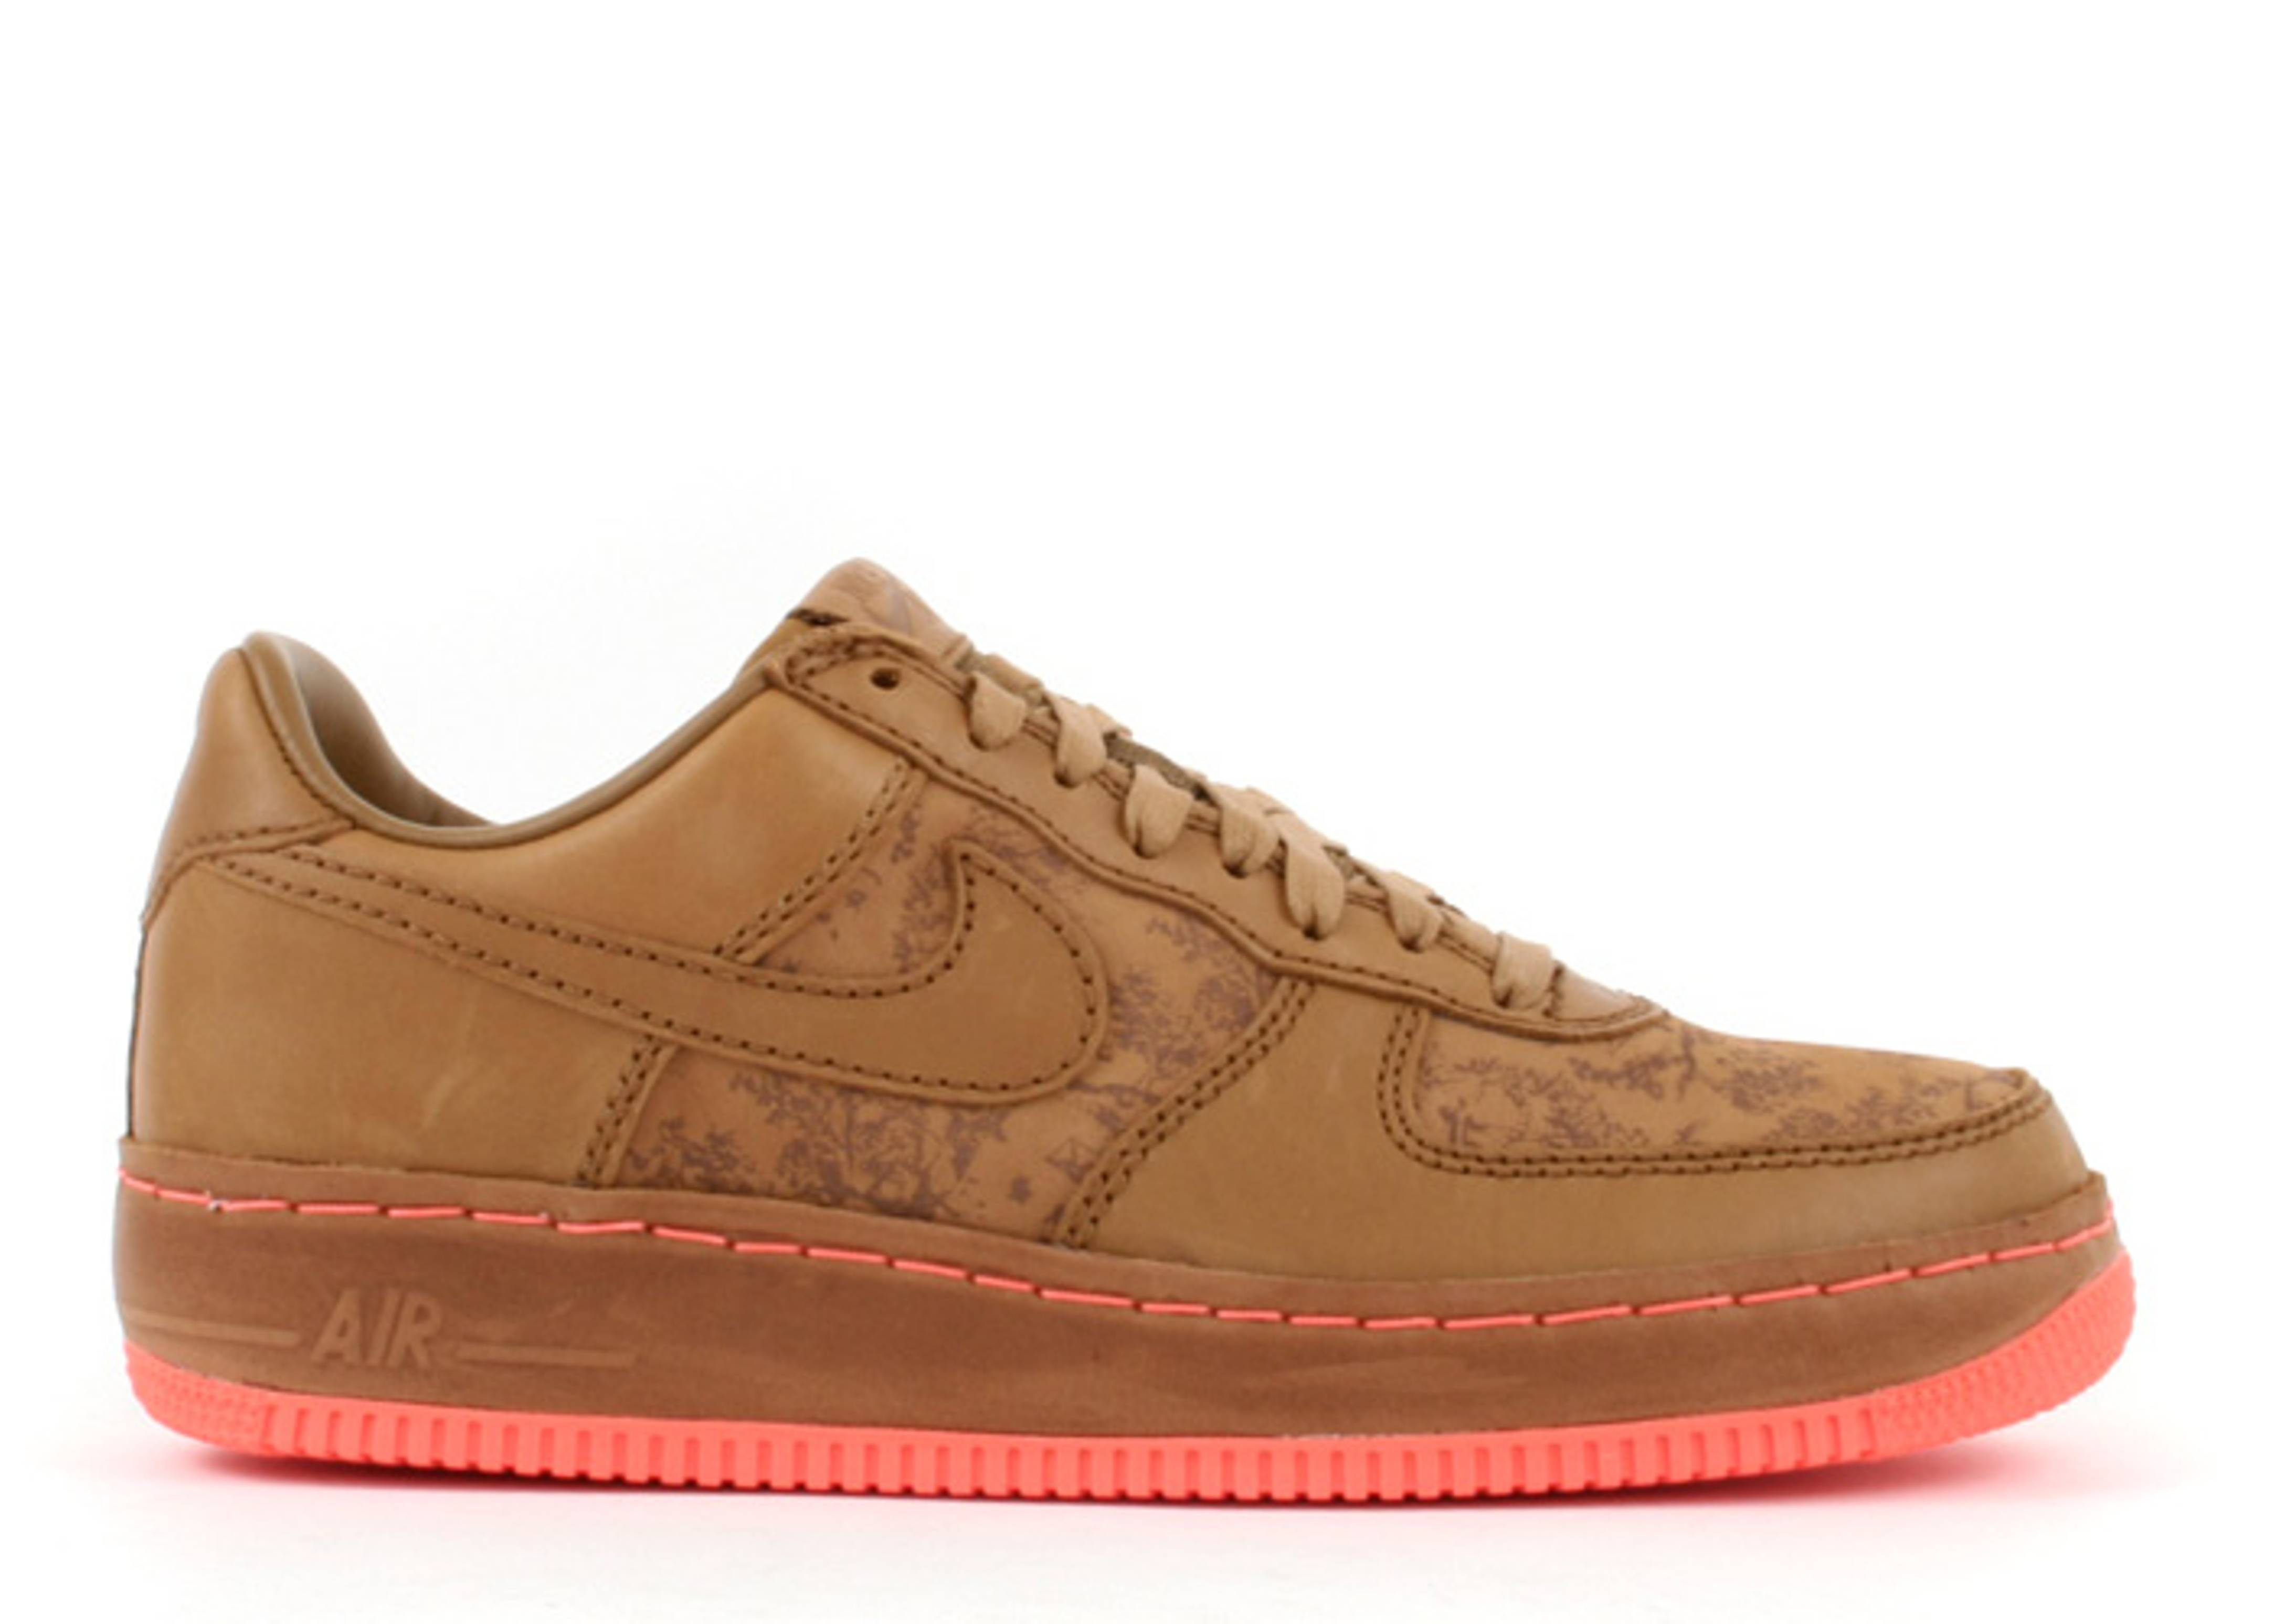 21056d0784ad Air Force 1 Low Insideout - Nike - 312486 271 - maple golden hops ...